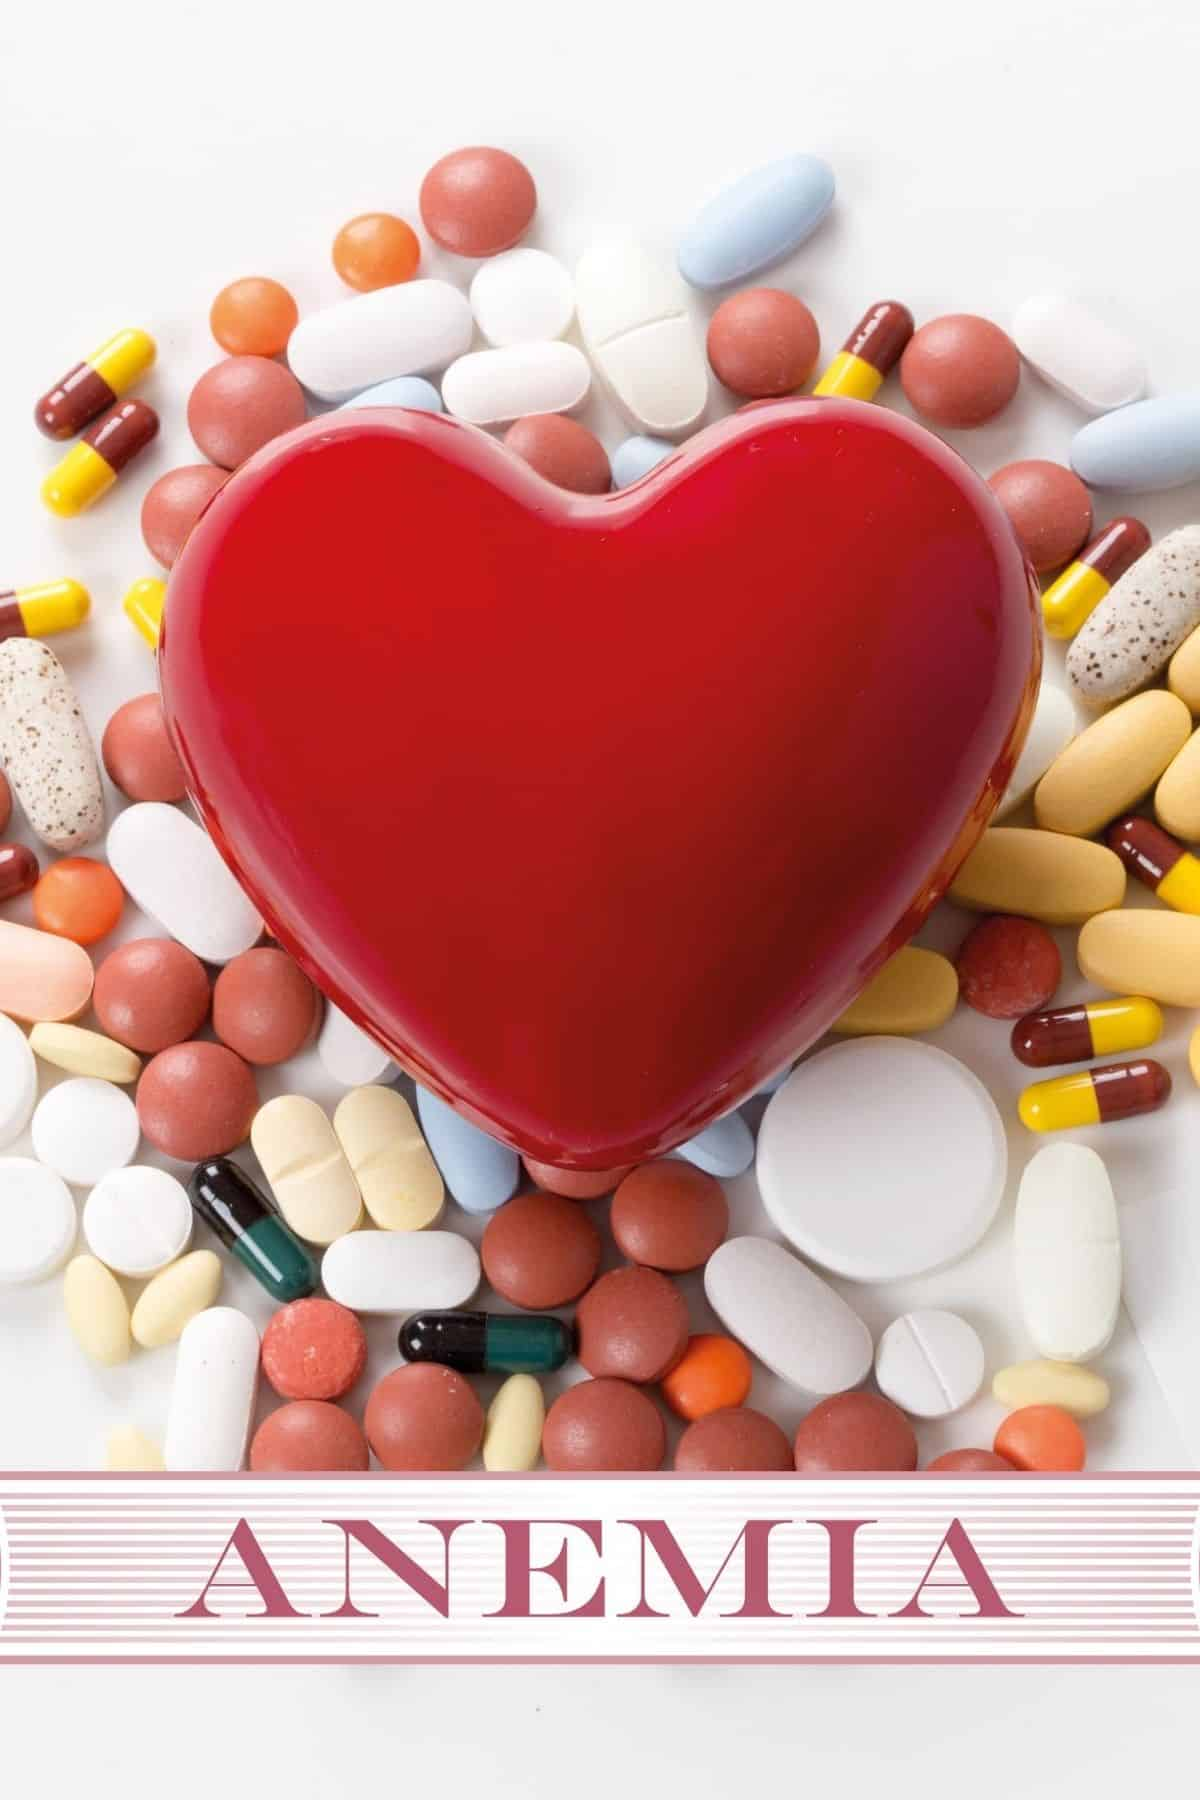 anemia graphic with a red heart and pills